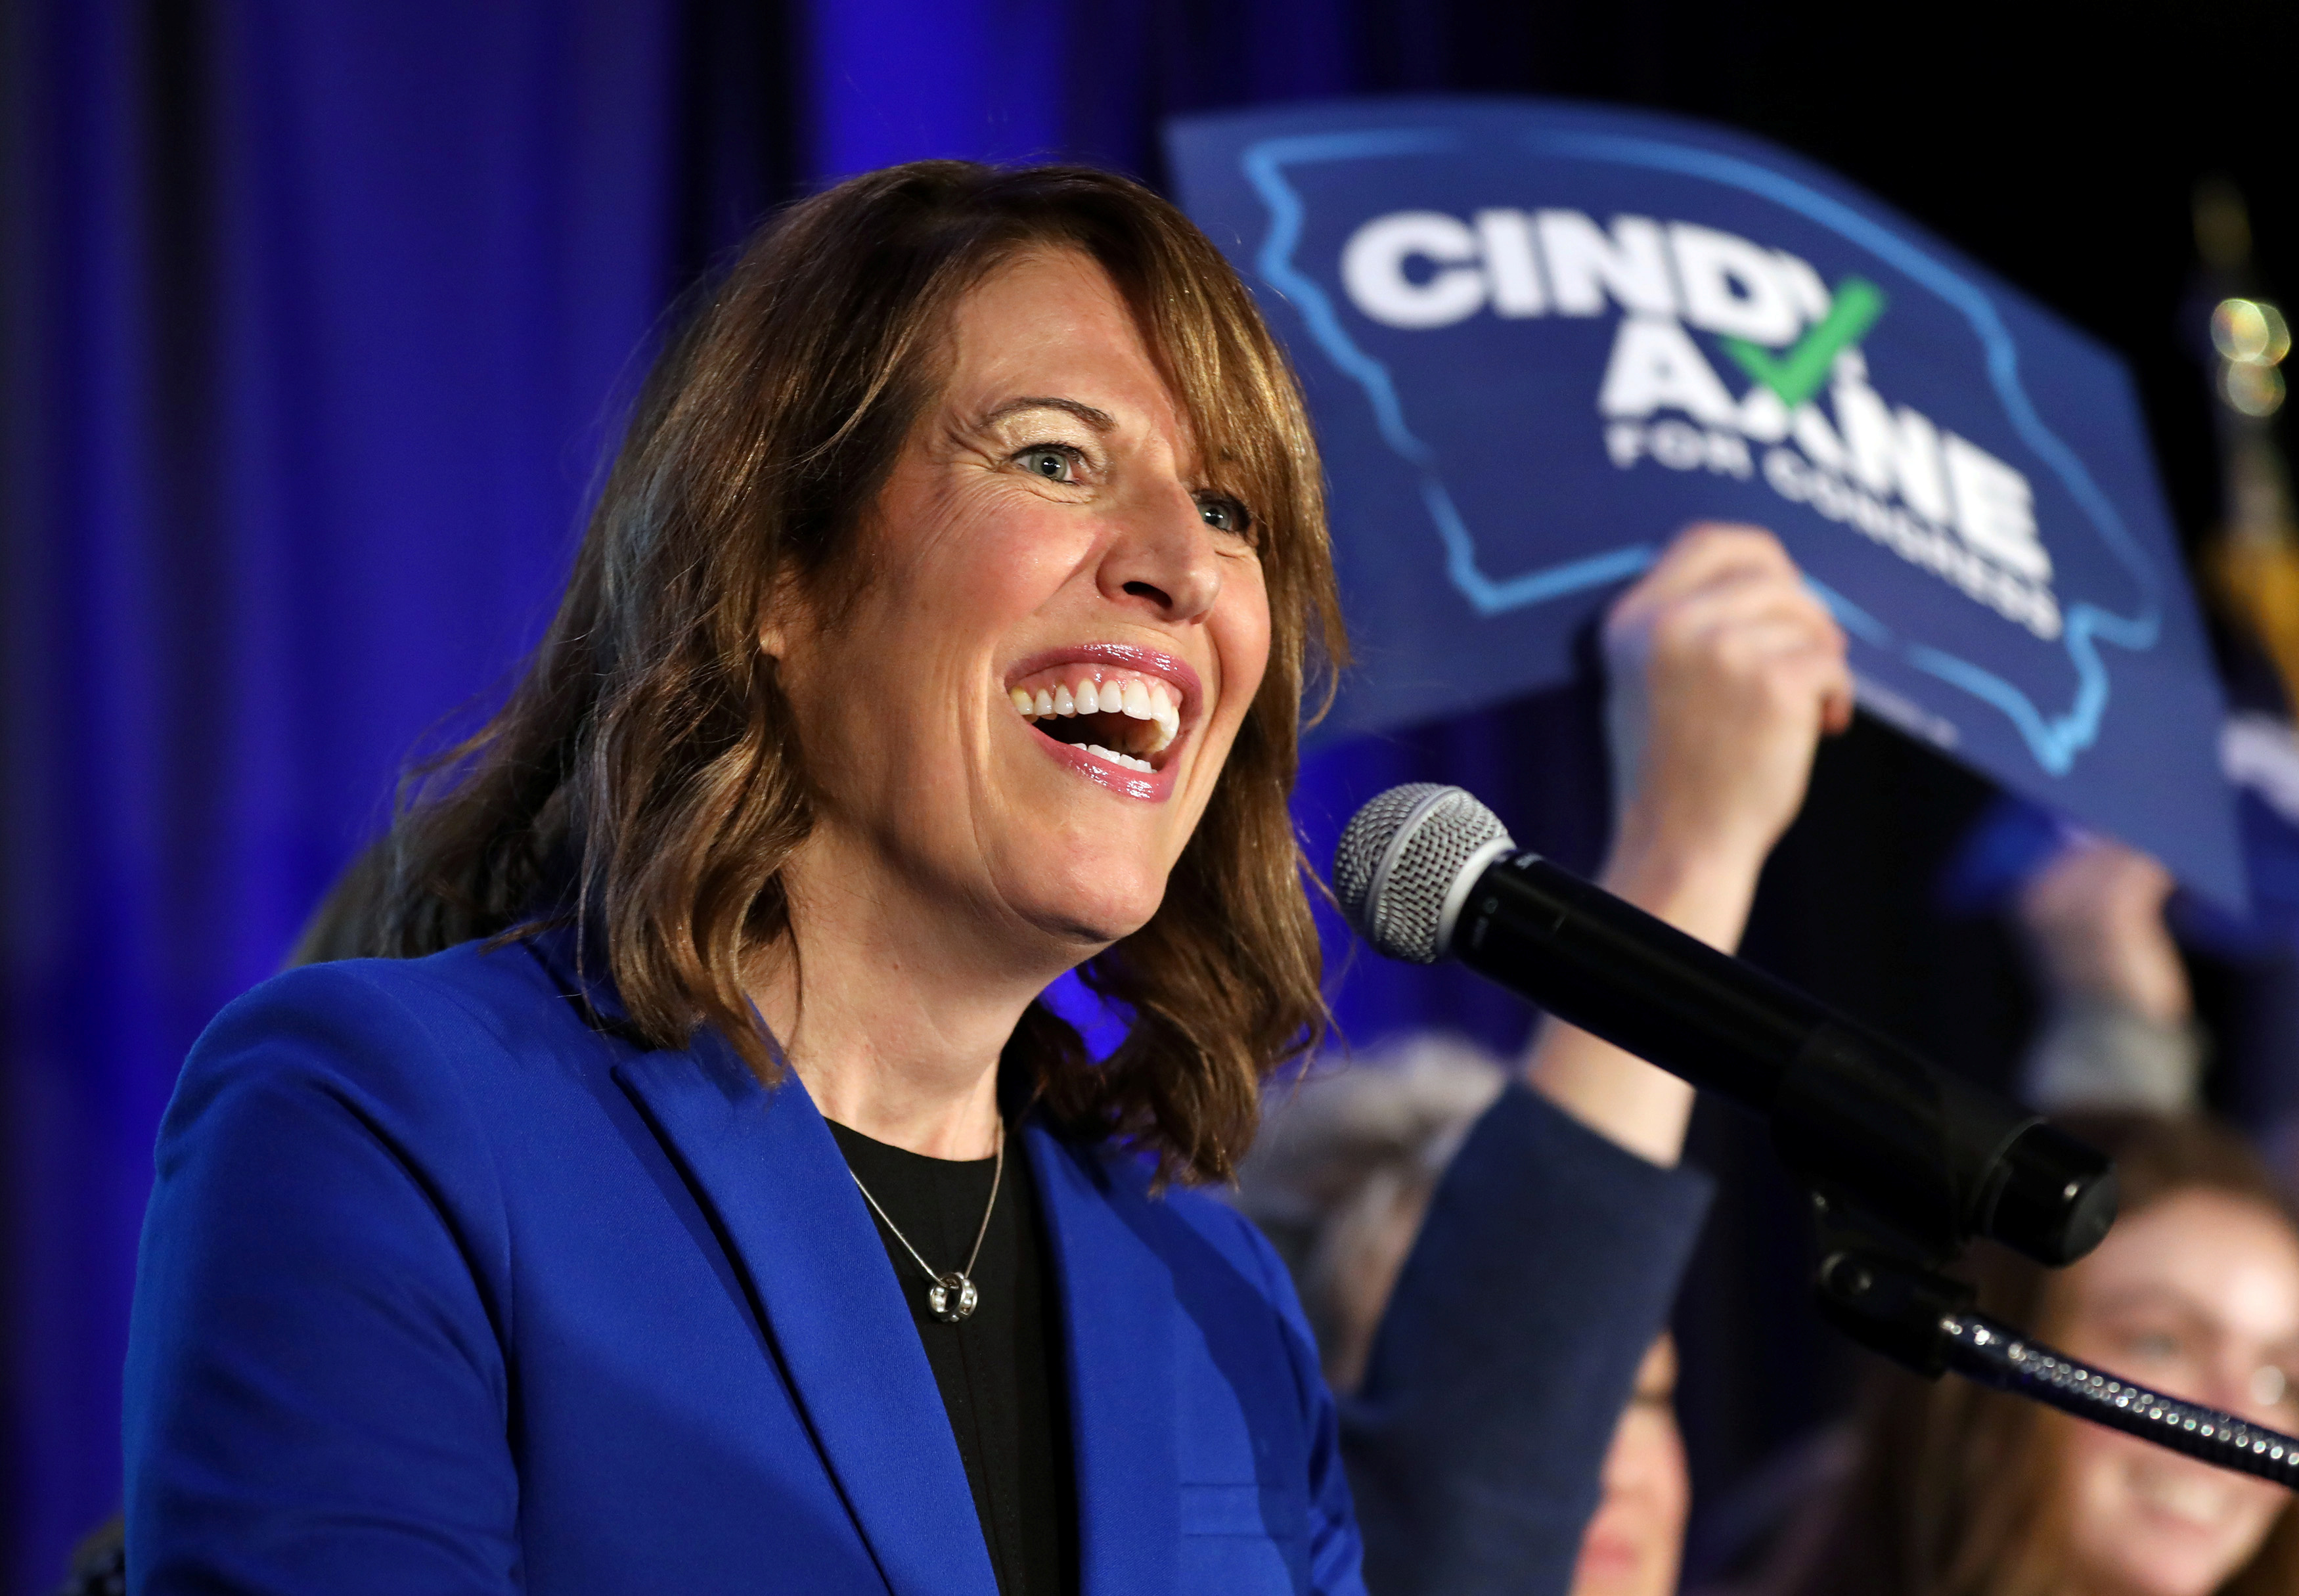 FILE - Democratic congressional candidate Cindy Axne reacts while appearing at her midterm election night party in Des Moines, Iowa, Nov. 6, 2018.